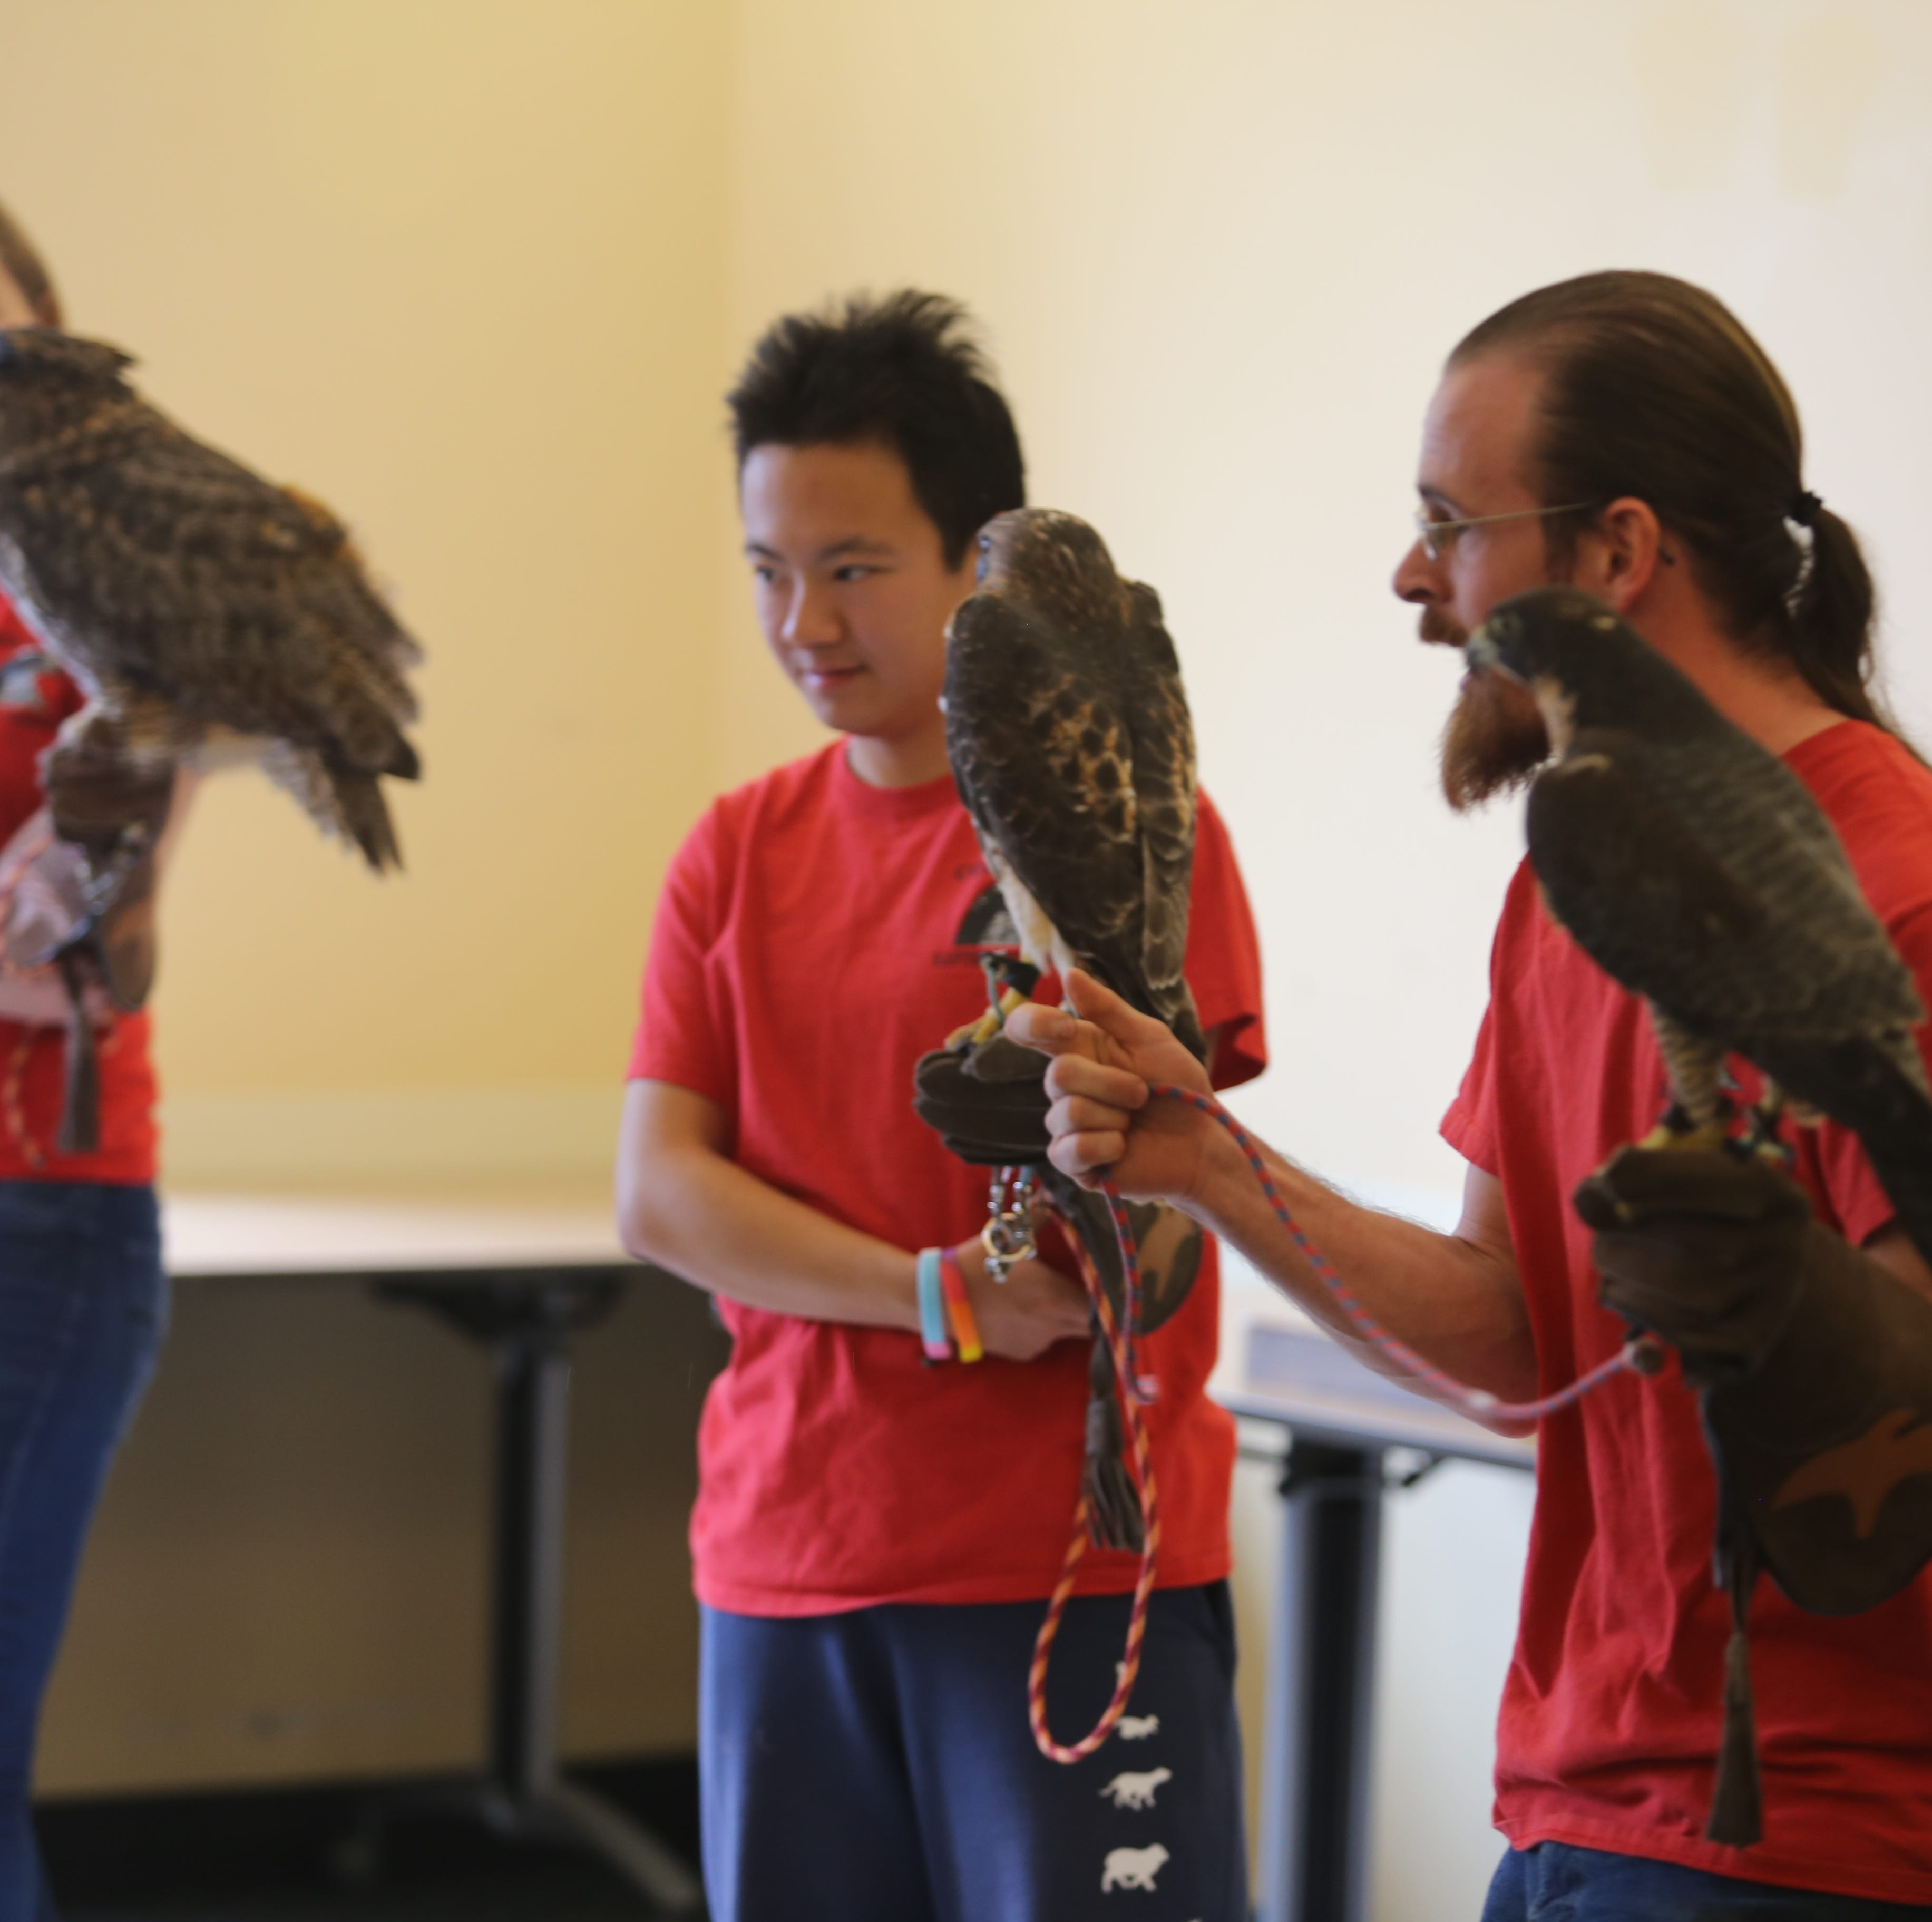 Cornell Raptor Program shows birds of prey to full audience of children and family members